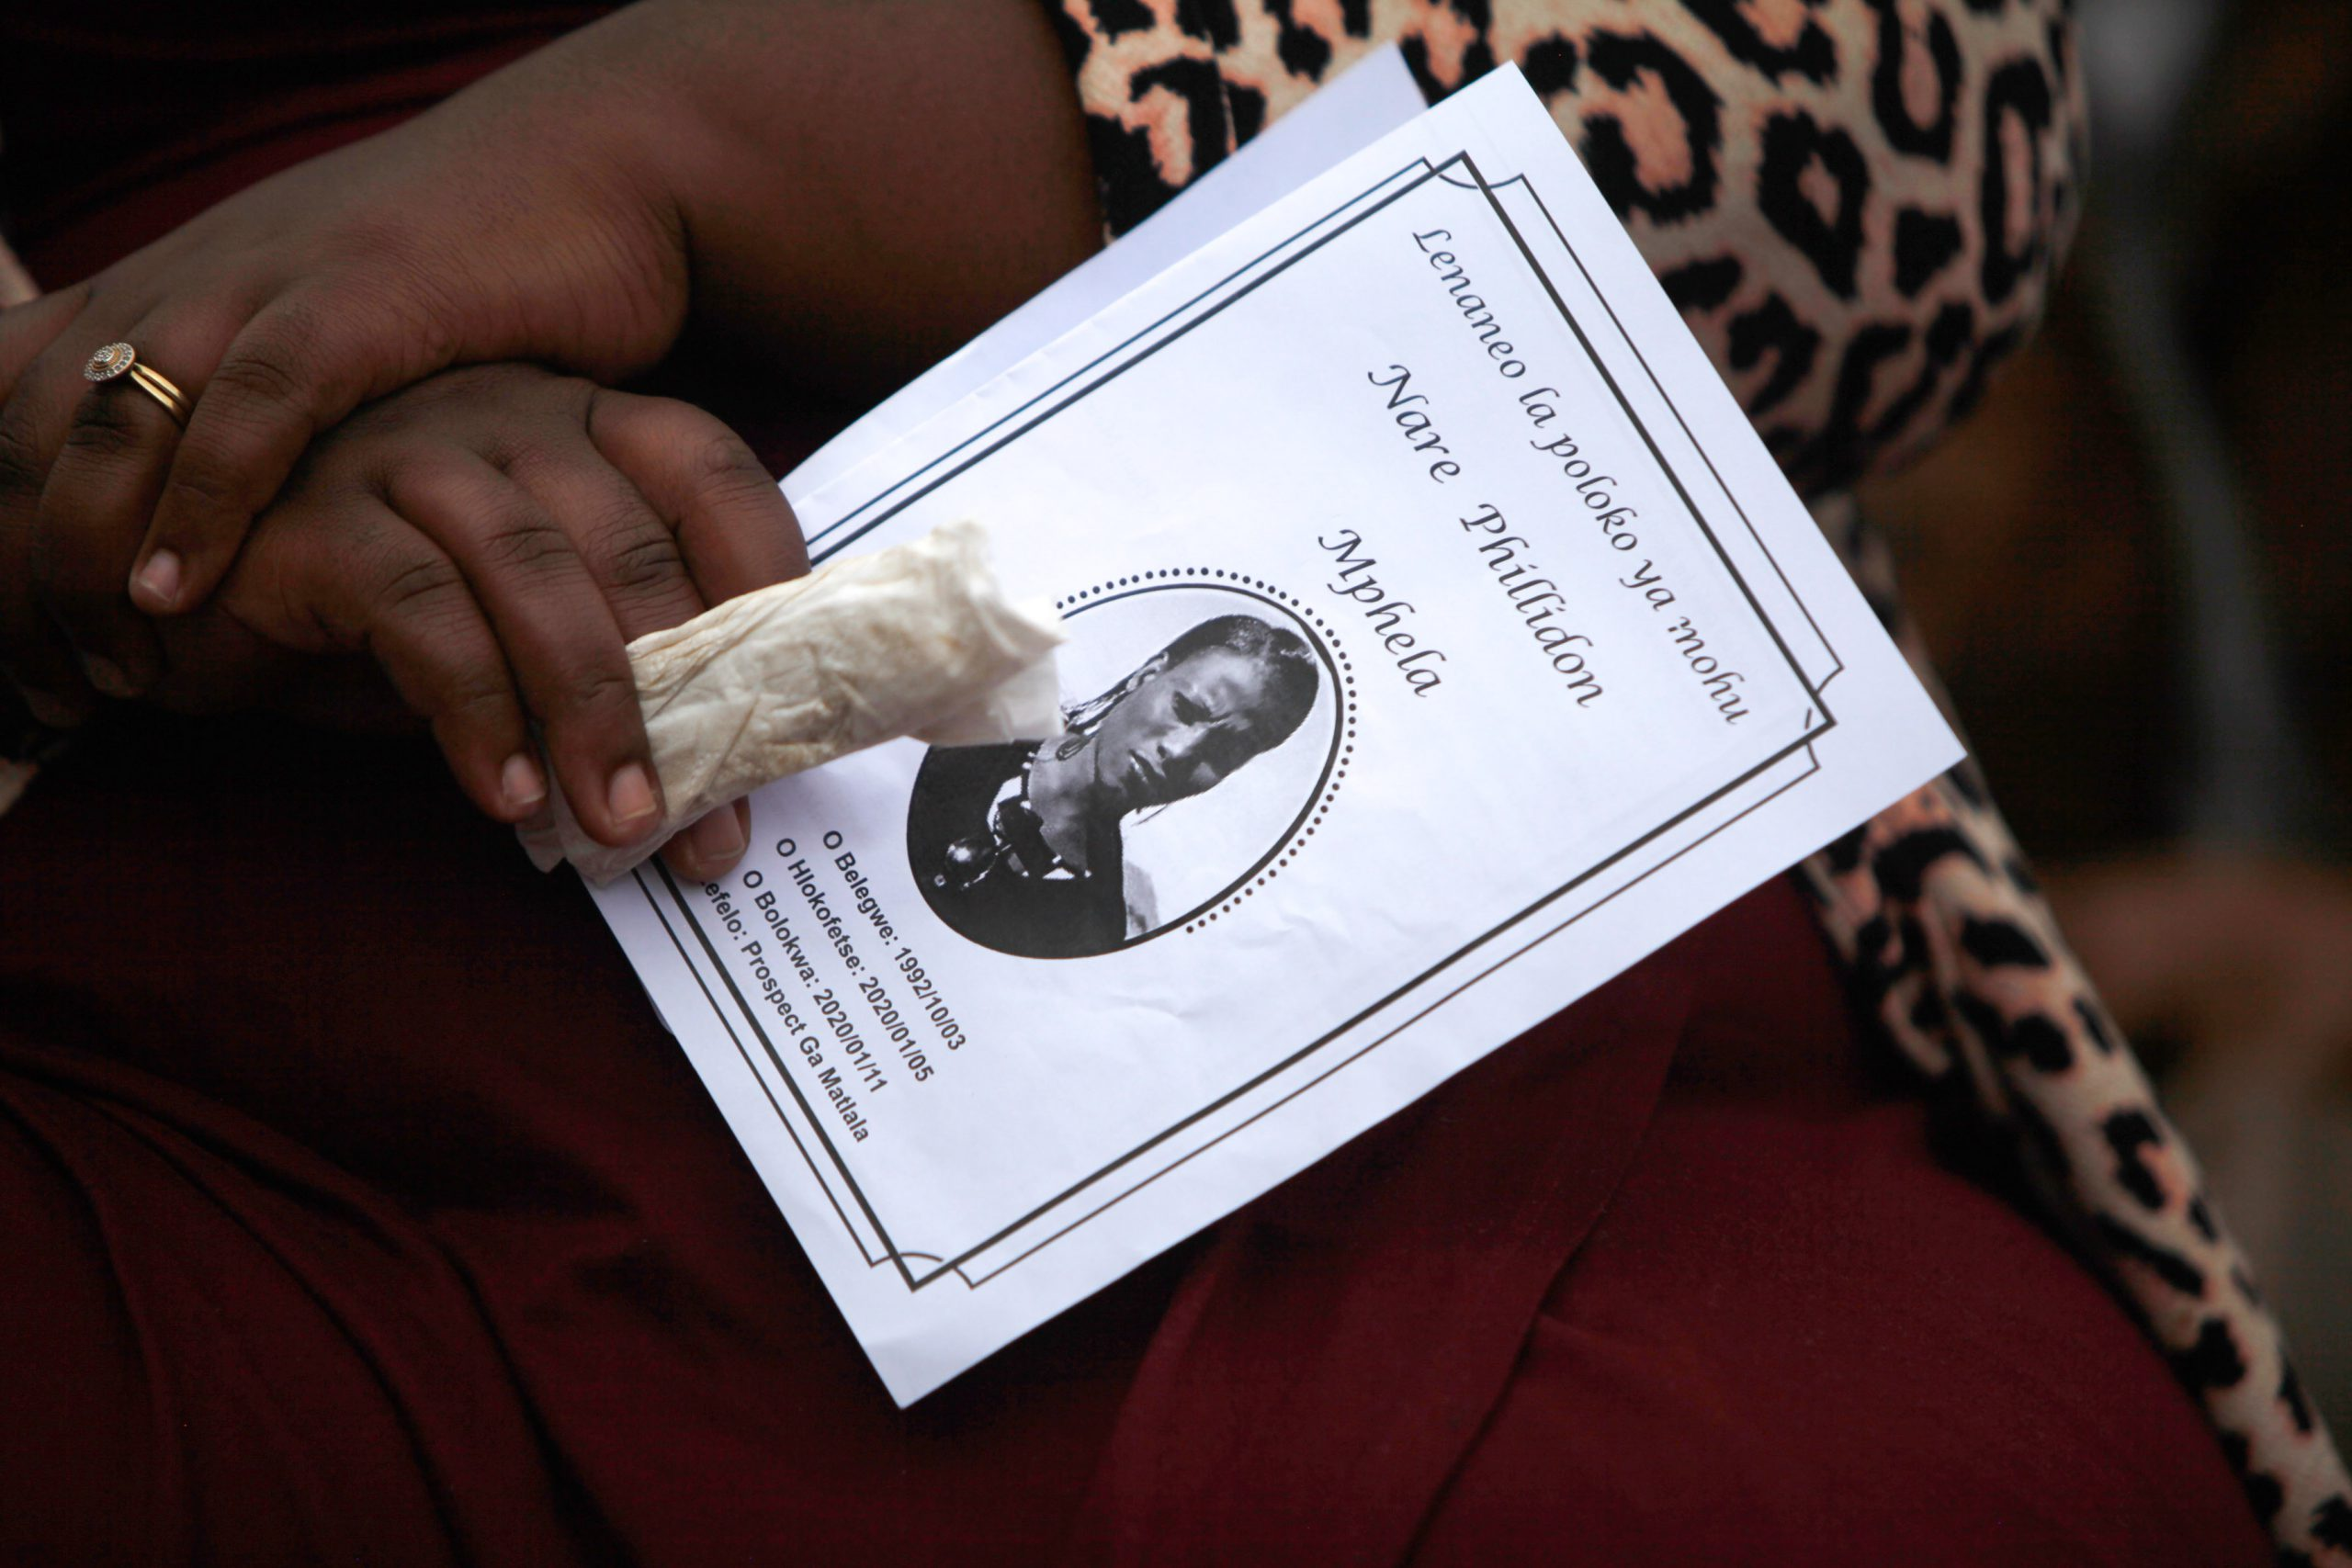 11 January 2020: Nare Mphela was a deeply religious woman, attending her local Apostolic church.